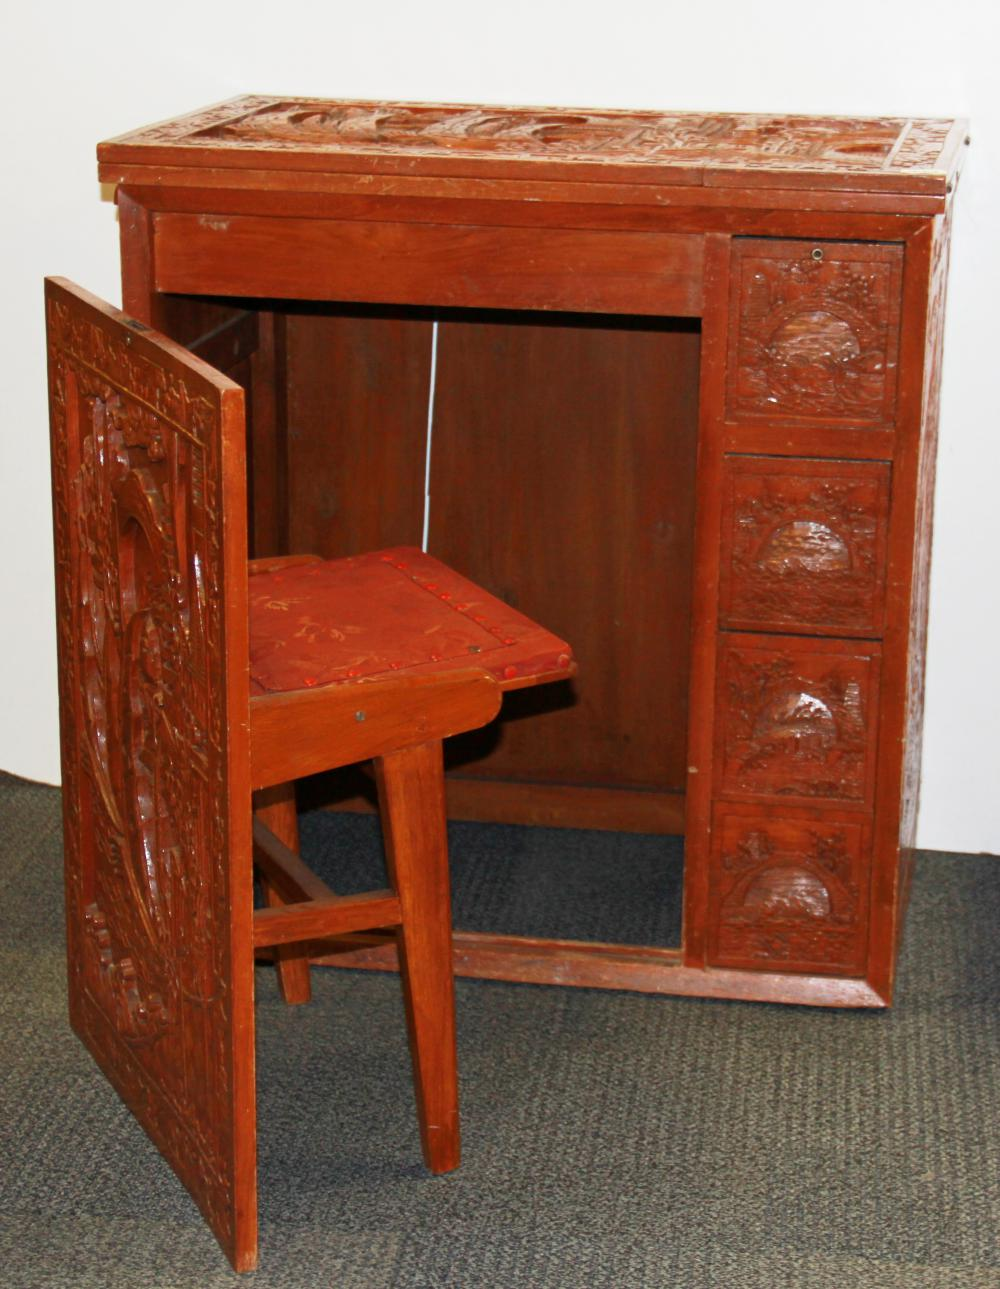 Unusual Desk An Unusual Oriental Carved Sewing Machine Cabinet Desk With